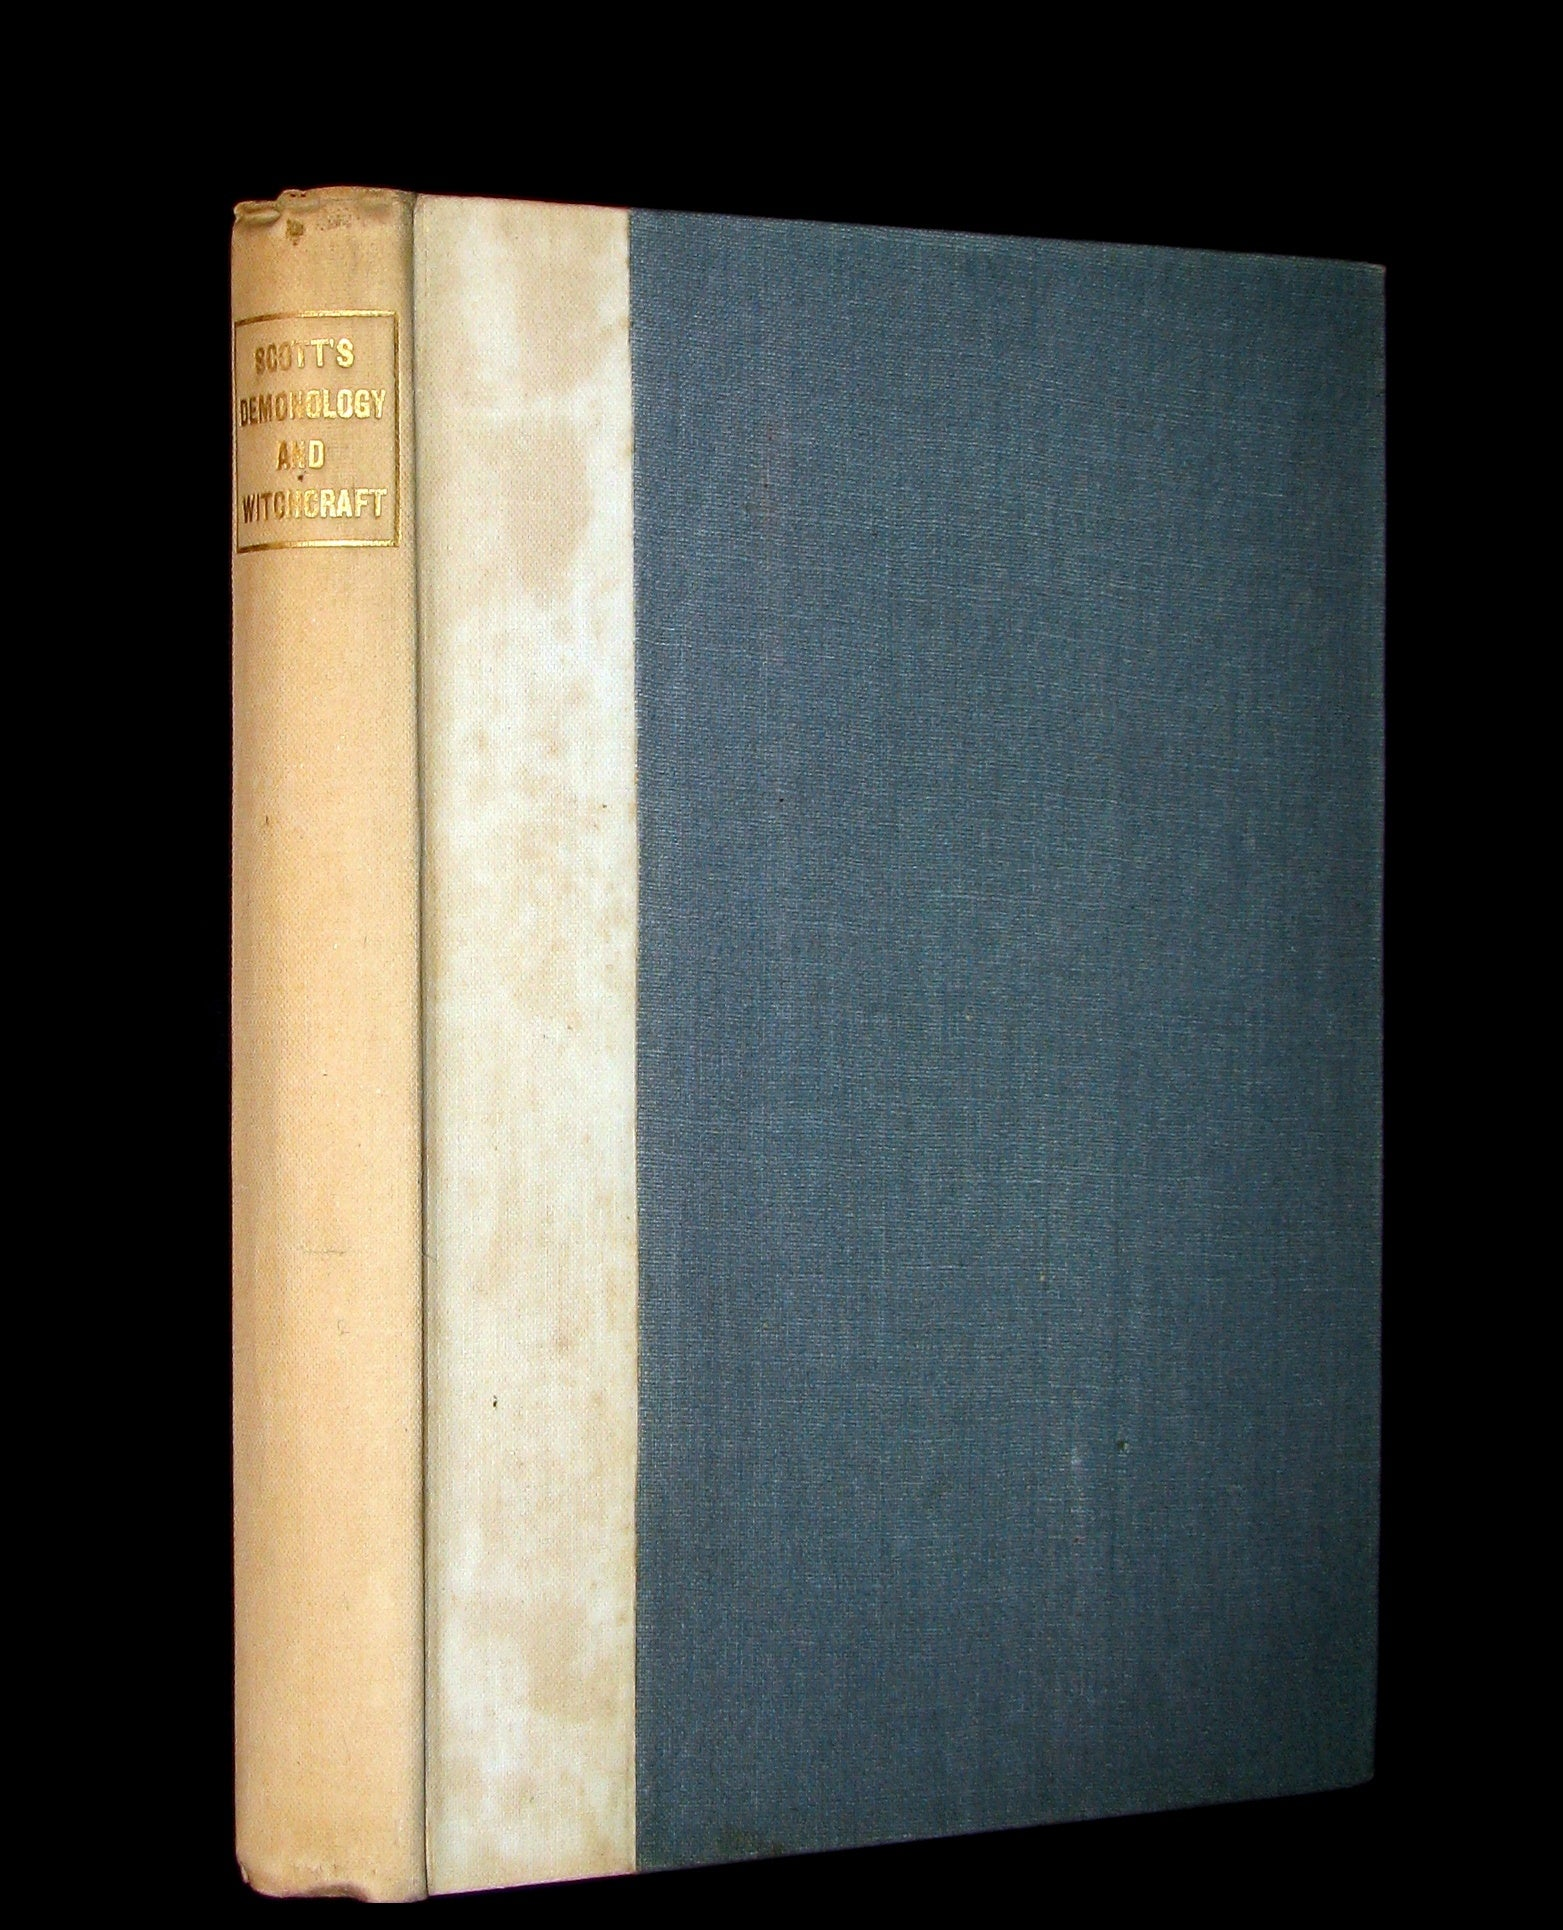 1887 Rare Book - Demonology and Witchcraft - WITCHES & FAIRIES by Sir Walter Scott.